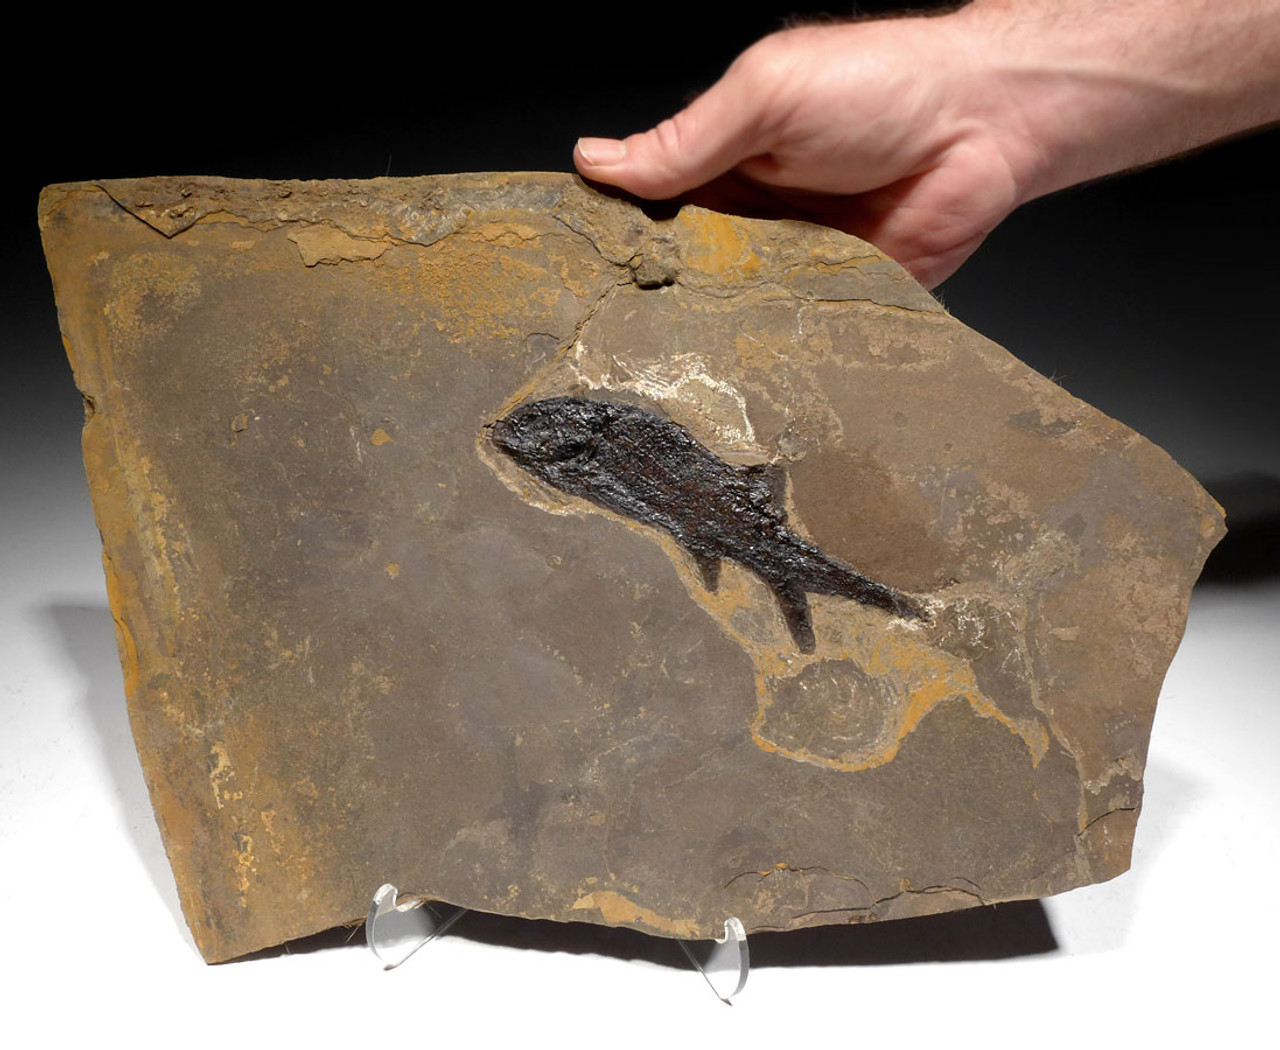 F148 - PARAMBLYPTERUS PERMIAN FISH FOSSIL FROM BEFORE THE DINOSAURS